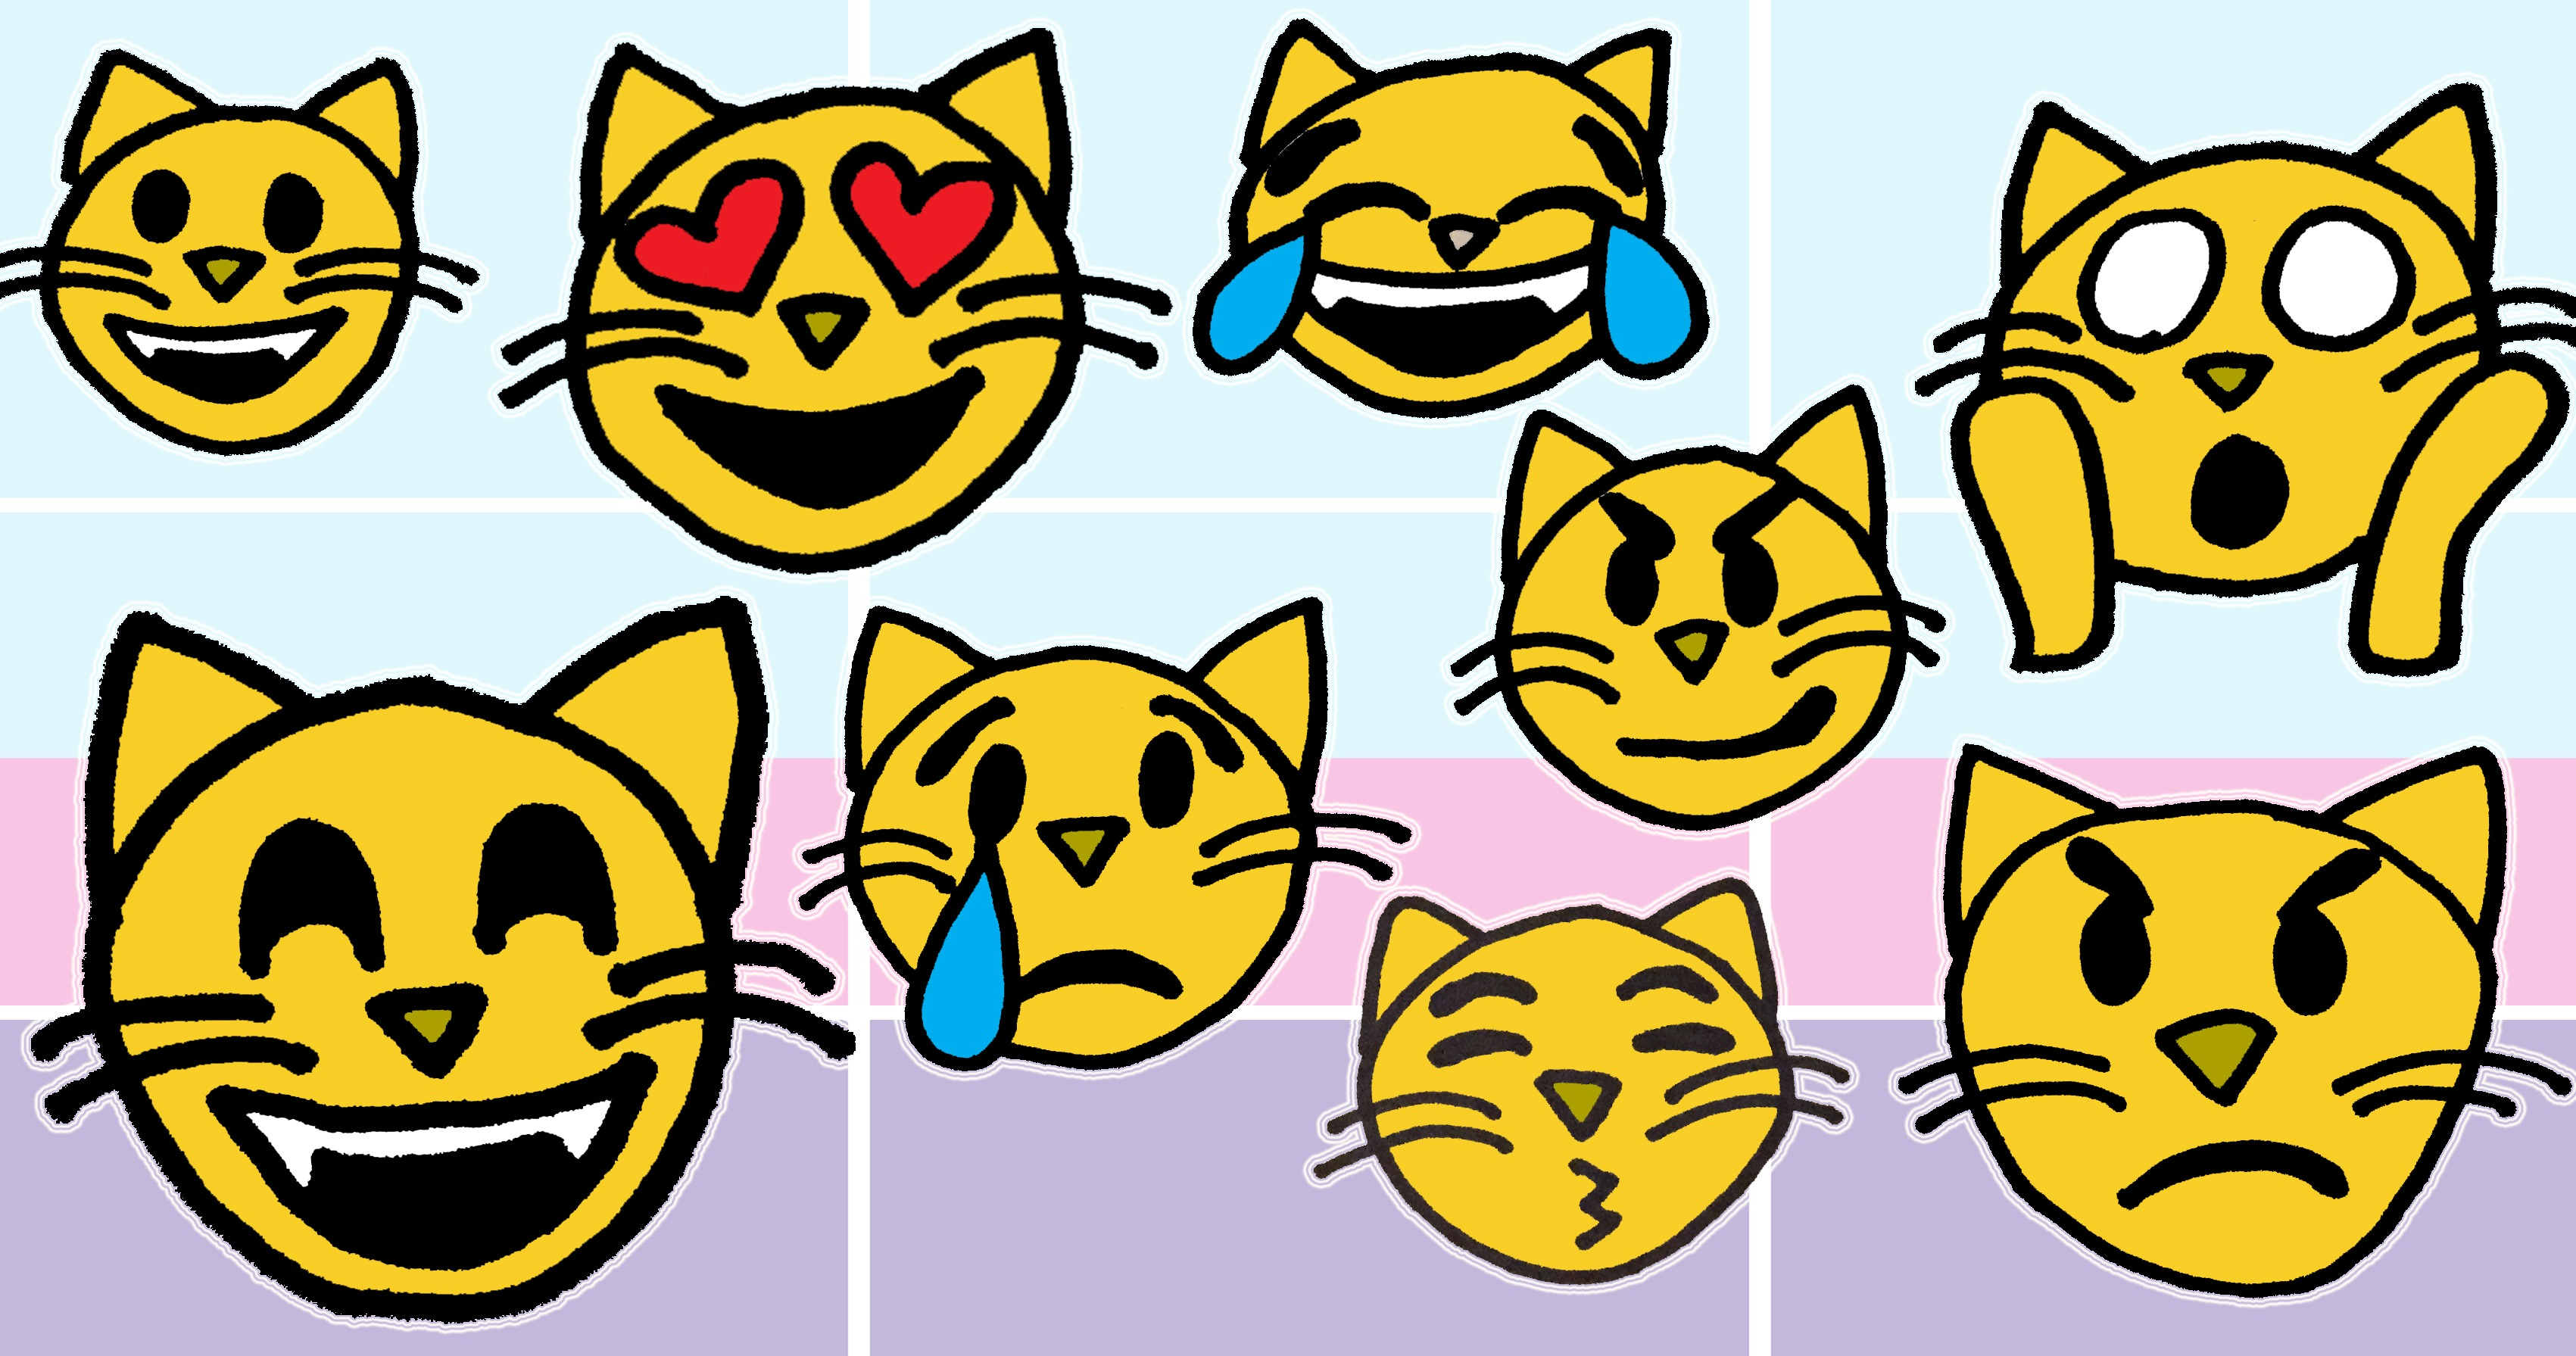 Draw so cute emojis